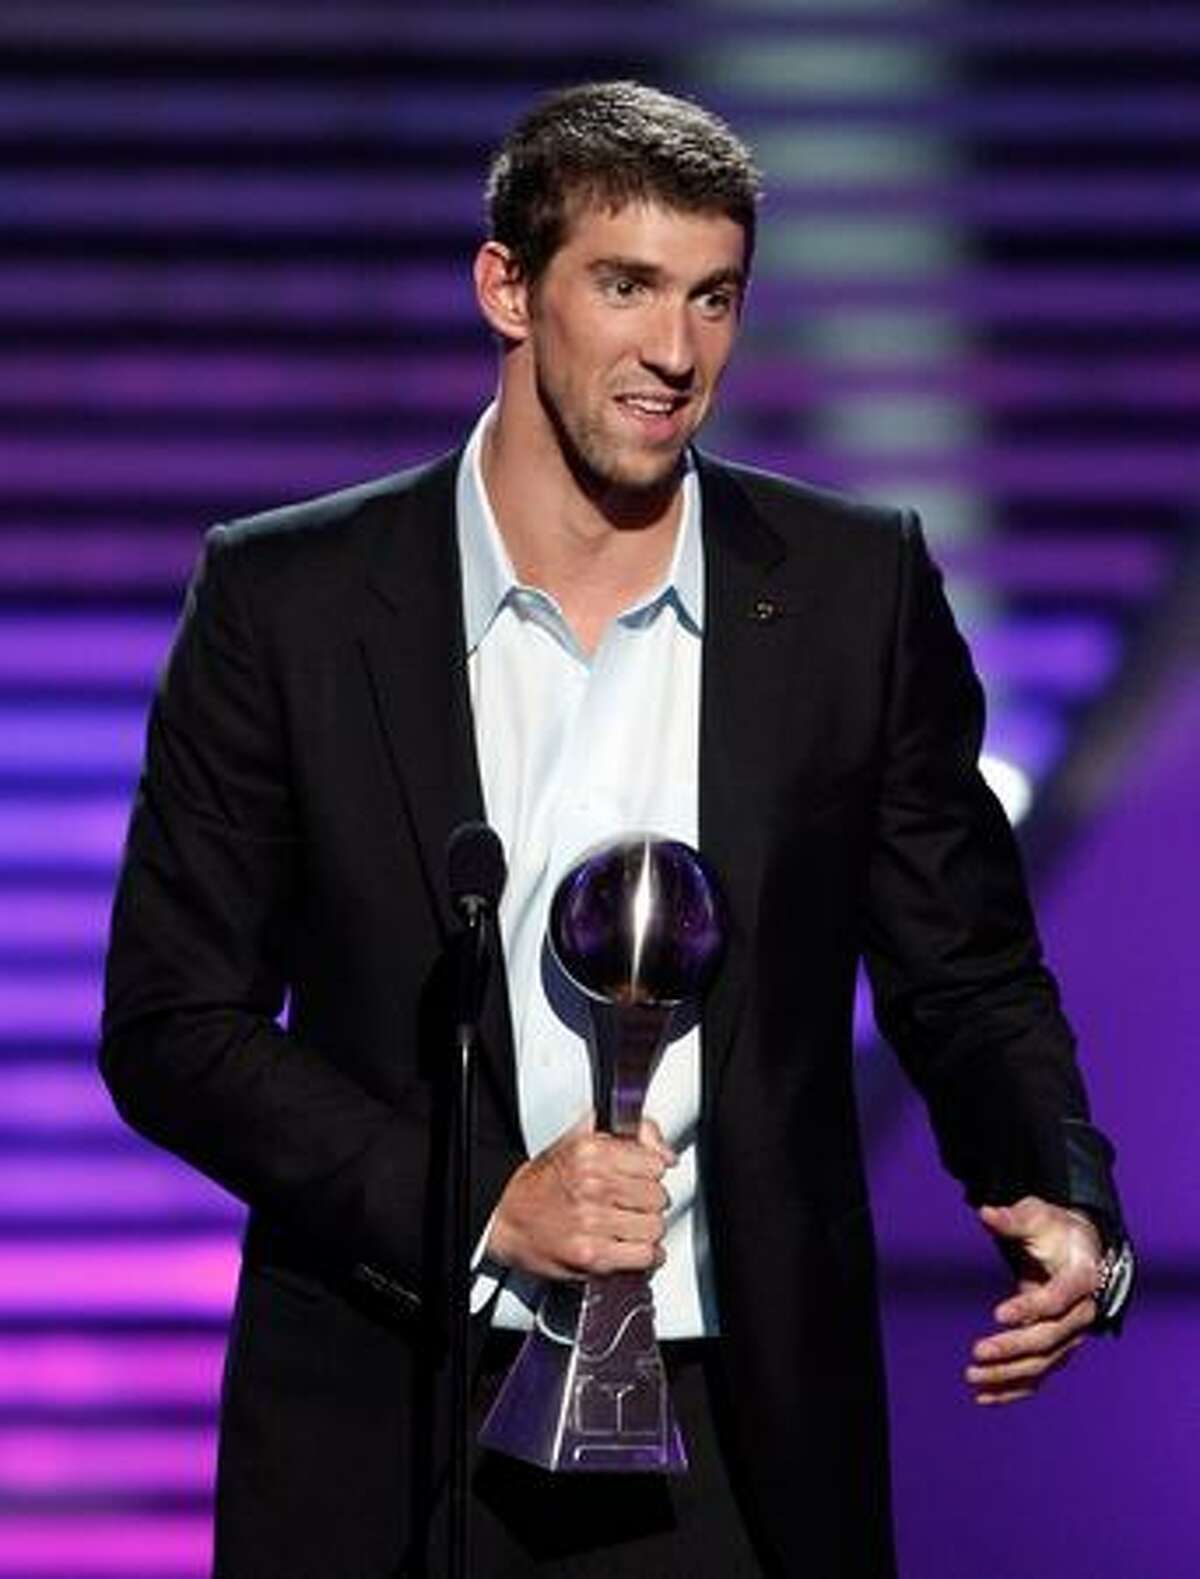 Olympic gold medalist swimmer Michael Phelps accepts the Best Championship Performance award onstage during the 2009 ESPY Awards held at Nokia Theatre LA Live in Los Angeles on Wednesday, July 15, 2009. The 17th annual ESPYs will air on Sunday, July 19 at 6 p.m. PDT on ESPN.